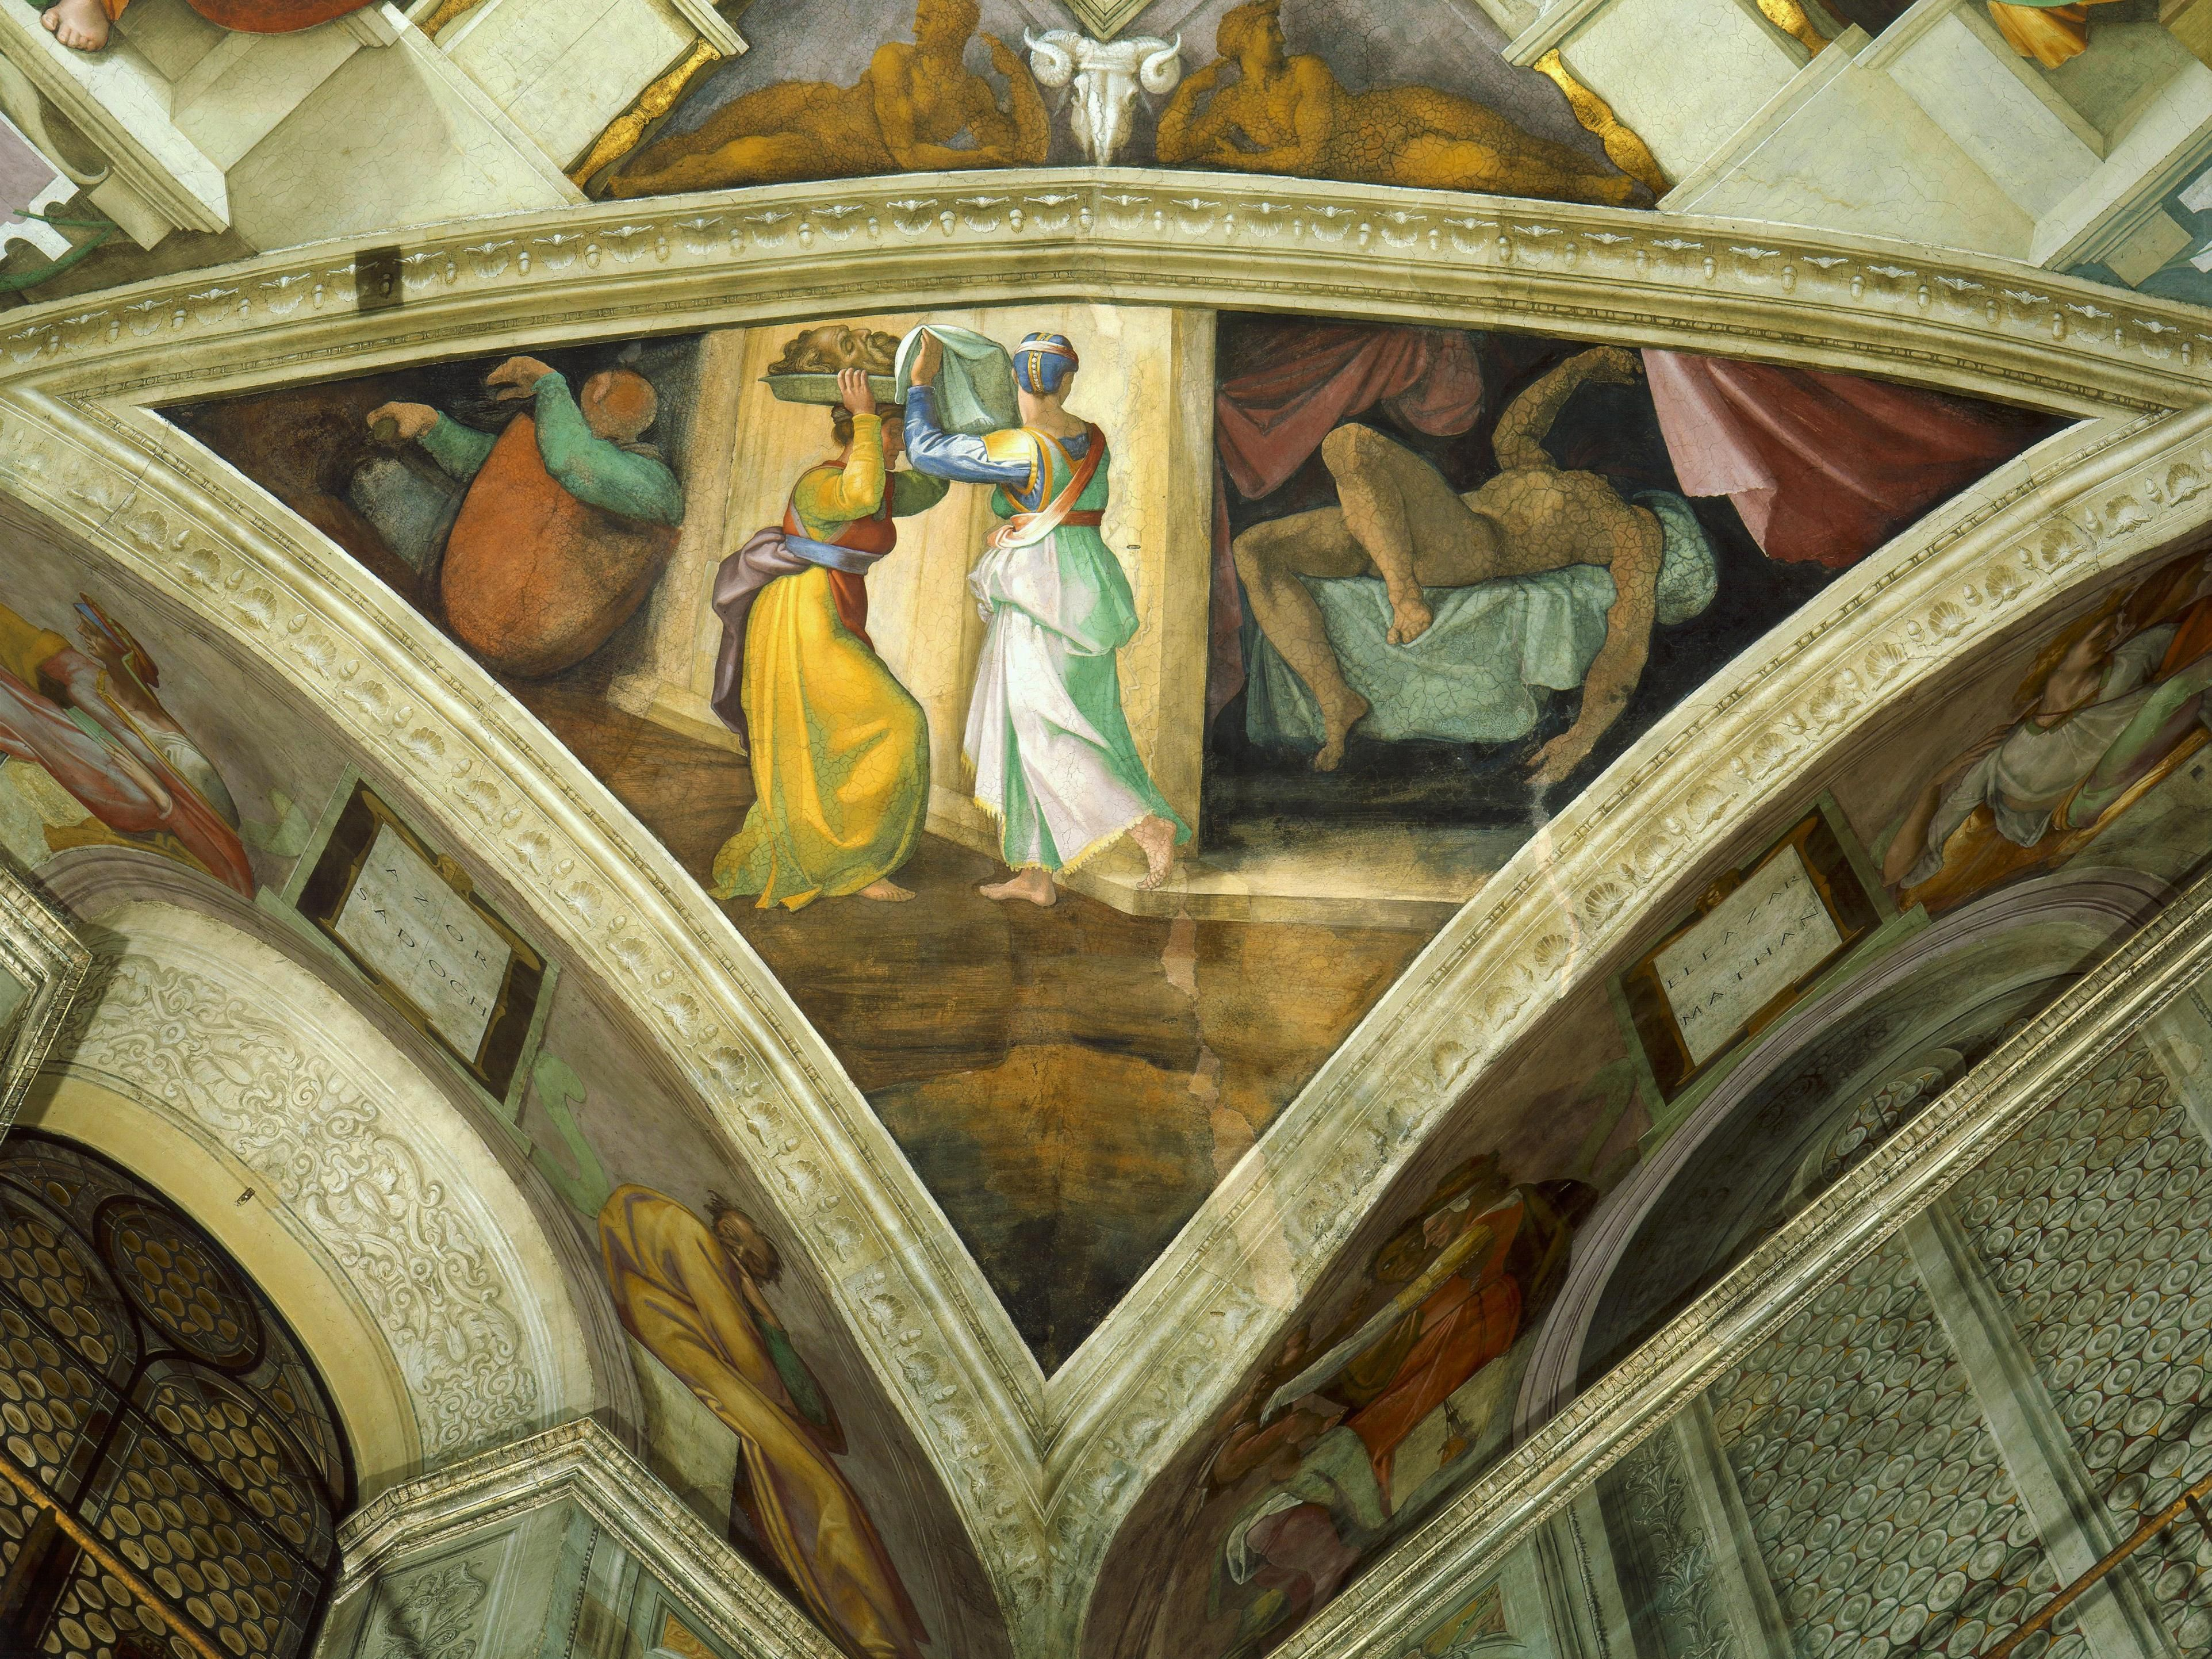 Detail of the Sistine Chapel